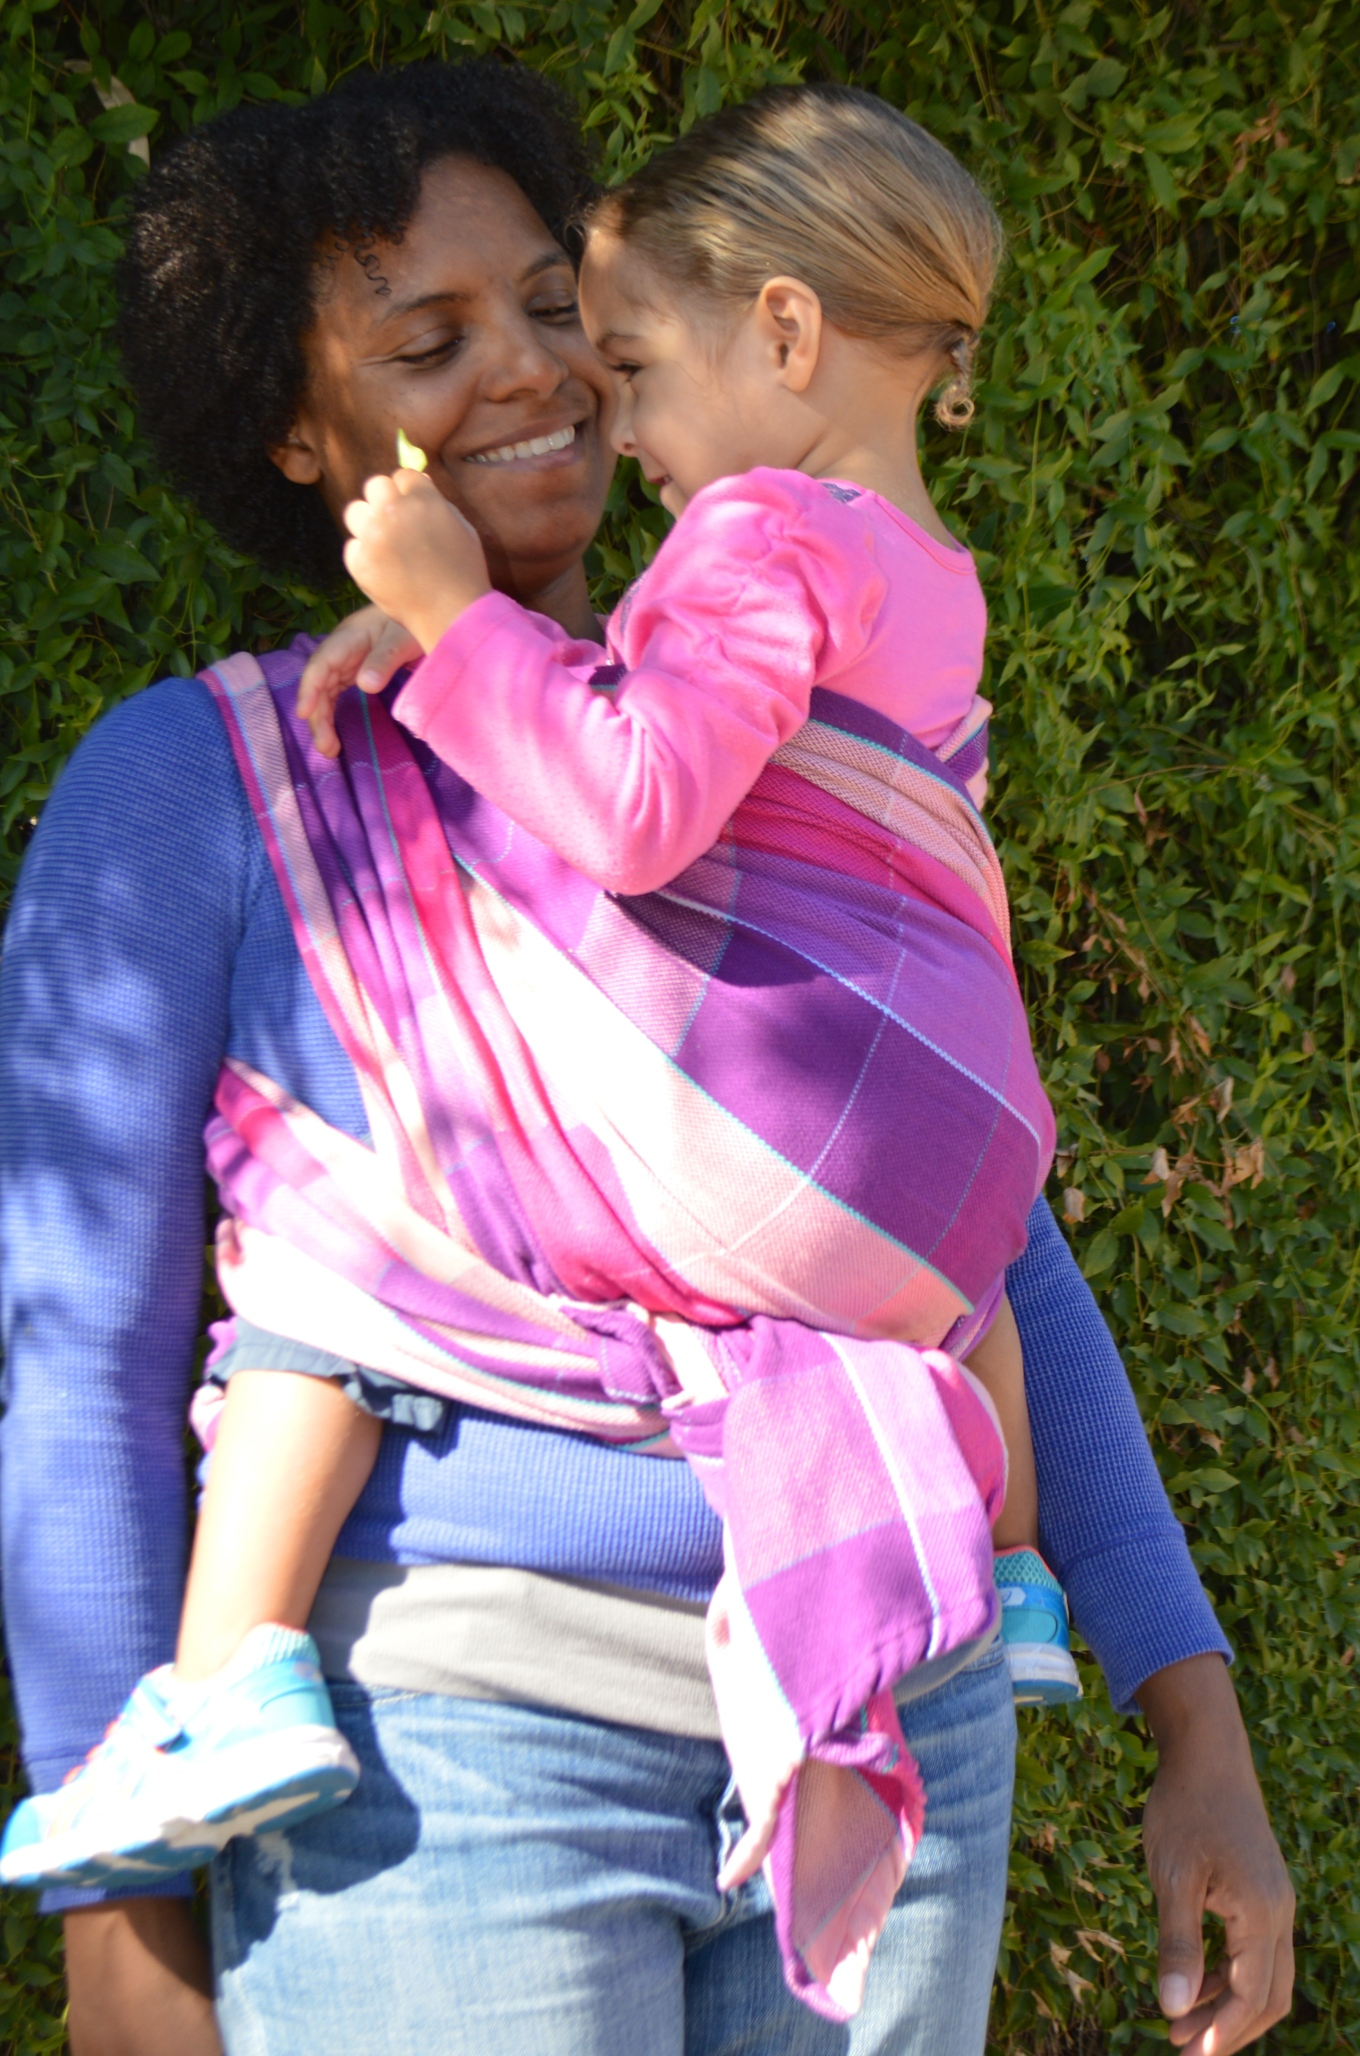 Image of medium brown momma with natural curly hair smiling at her baby as she wears light brown curly blonde haired toddler in a tonal magenta, pink, purple wrap with turquoise pinstriping. Baby is wearing a pink shirt and looks at the leaves in her hand.